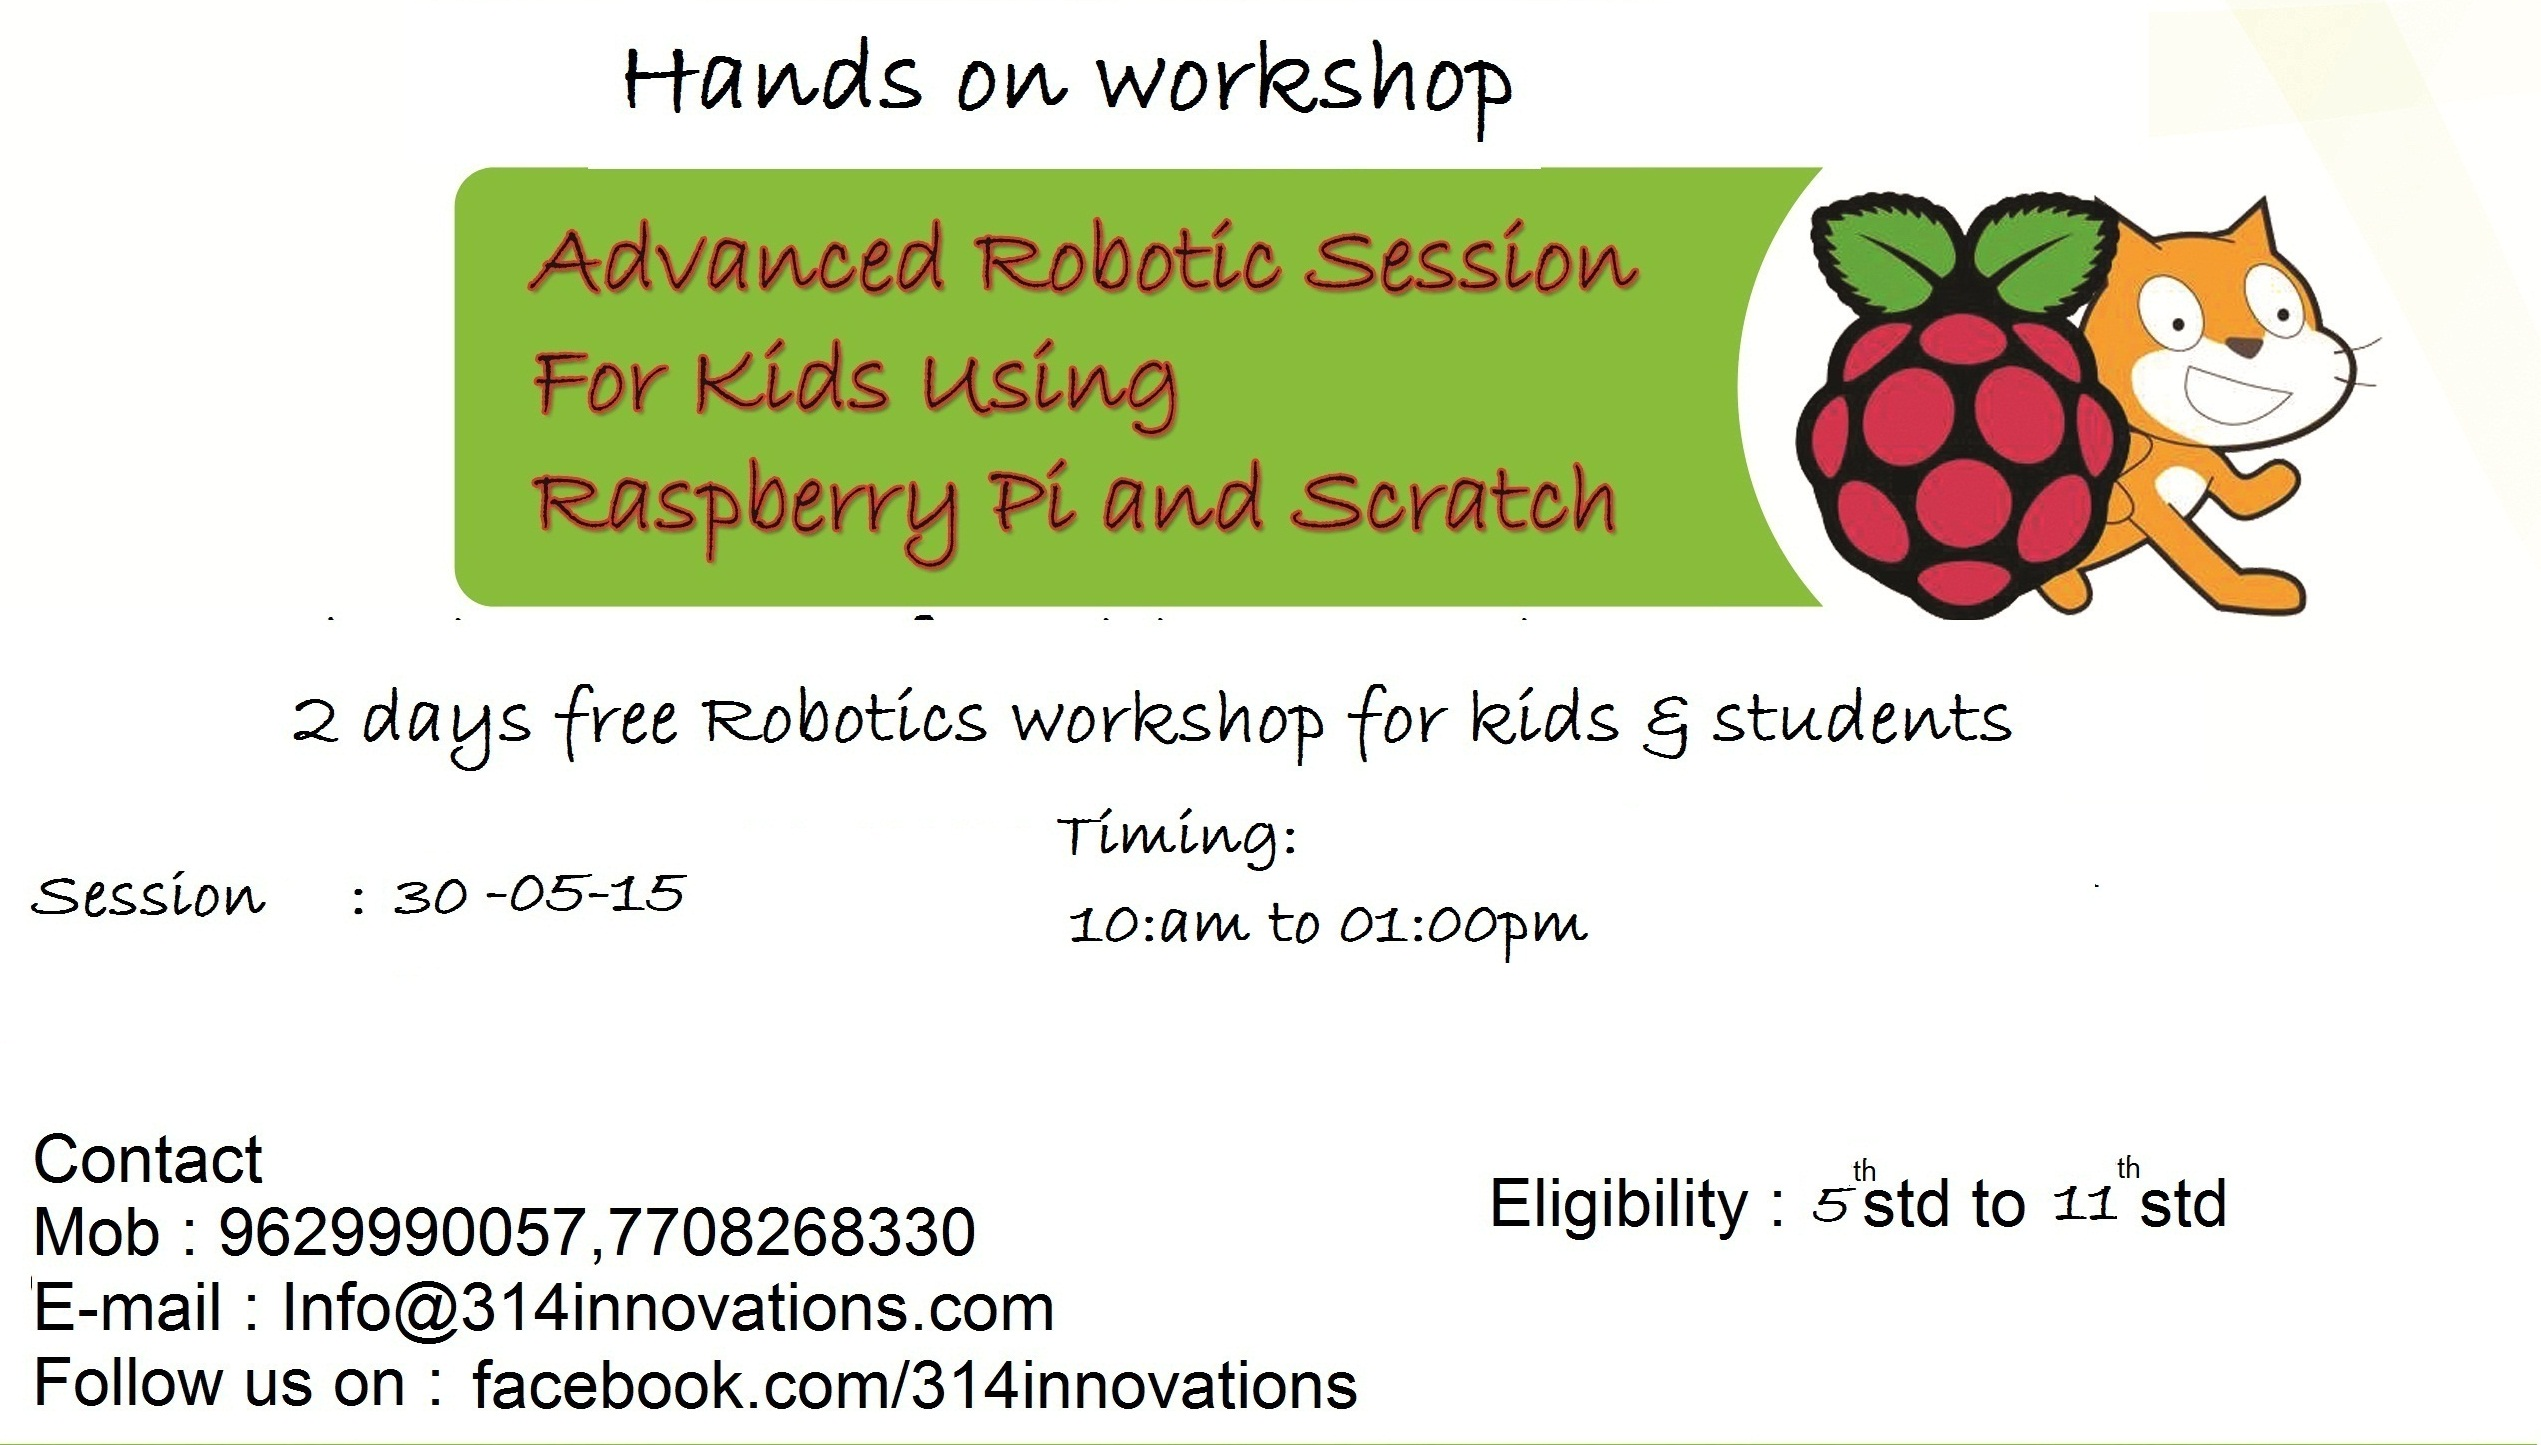 Free Robotics workshop for kids and students using raspberry pi and scratch with hands on experience Copy